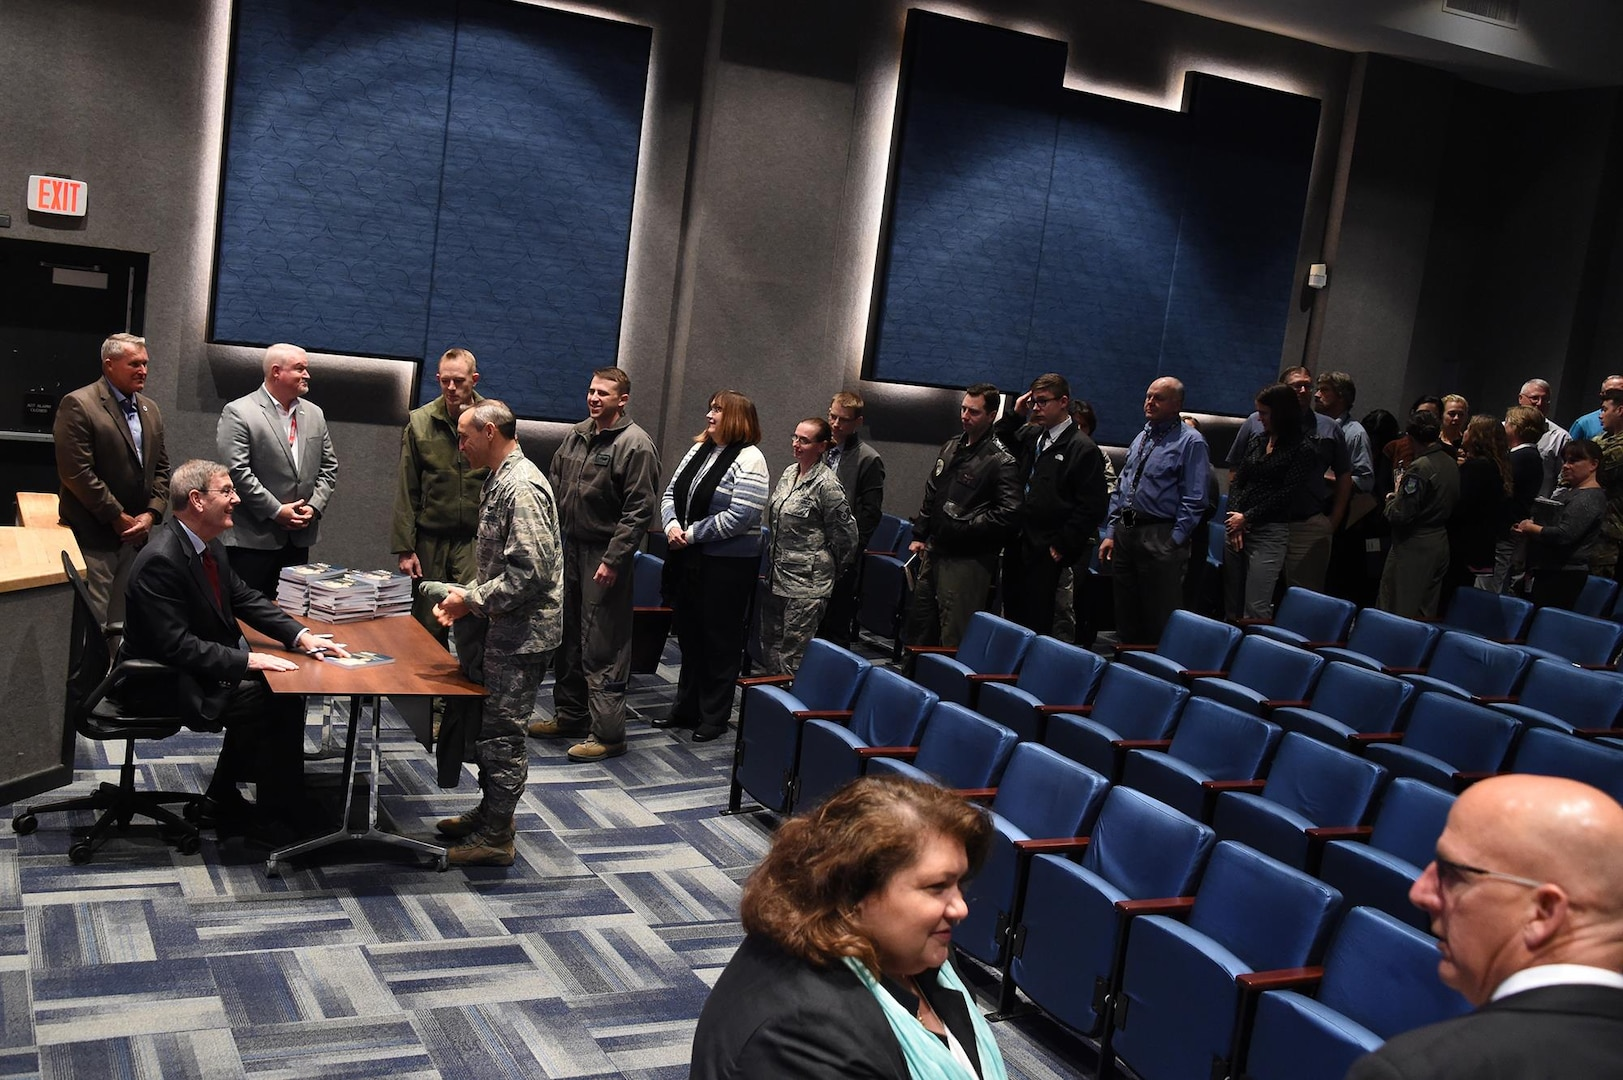 Retired U.S. Air Force Gen. Stephen Lorenz signs copies of his book, titled Lorenz on Leadership, after his presentation to members of U.S. Strategic Command at Offutt Air Force Base, Neb., Nov. 6, 2017. Lorenz, who retired as commander of Air Education and Training Command, discussed the traits and practices of effective leaders based on his experience as a military officer and commander.